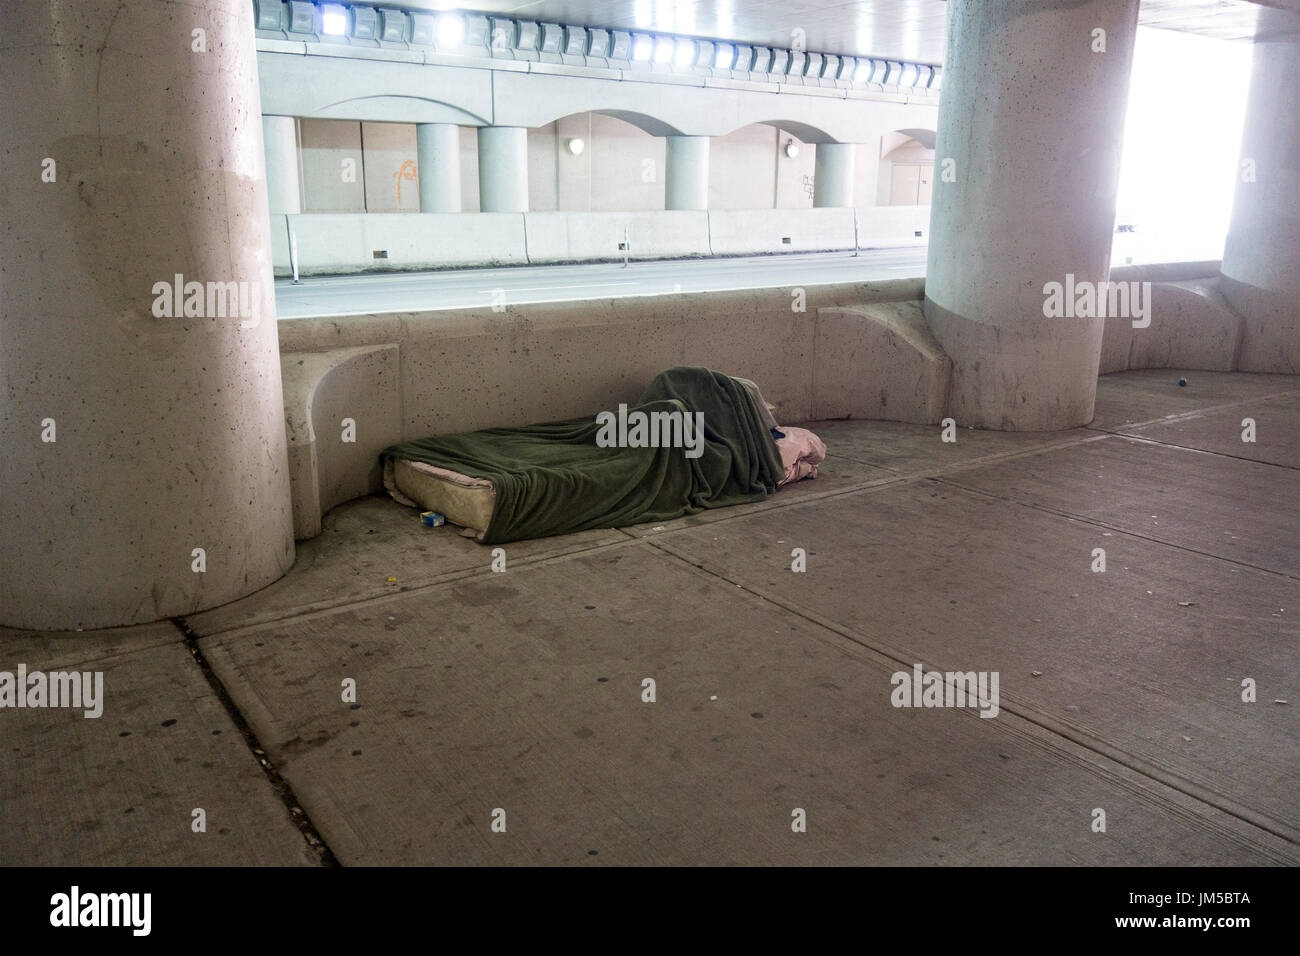 unoccupied-bed-for-homeless-person-along